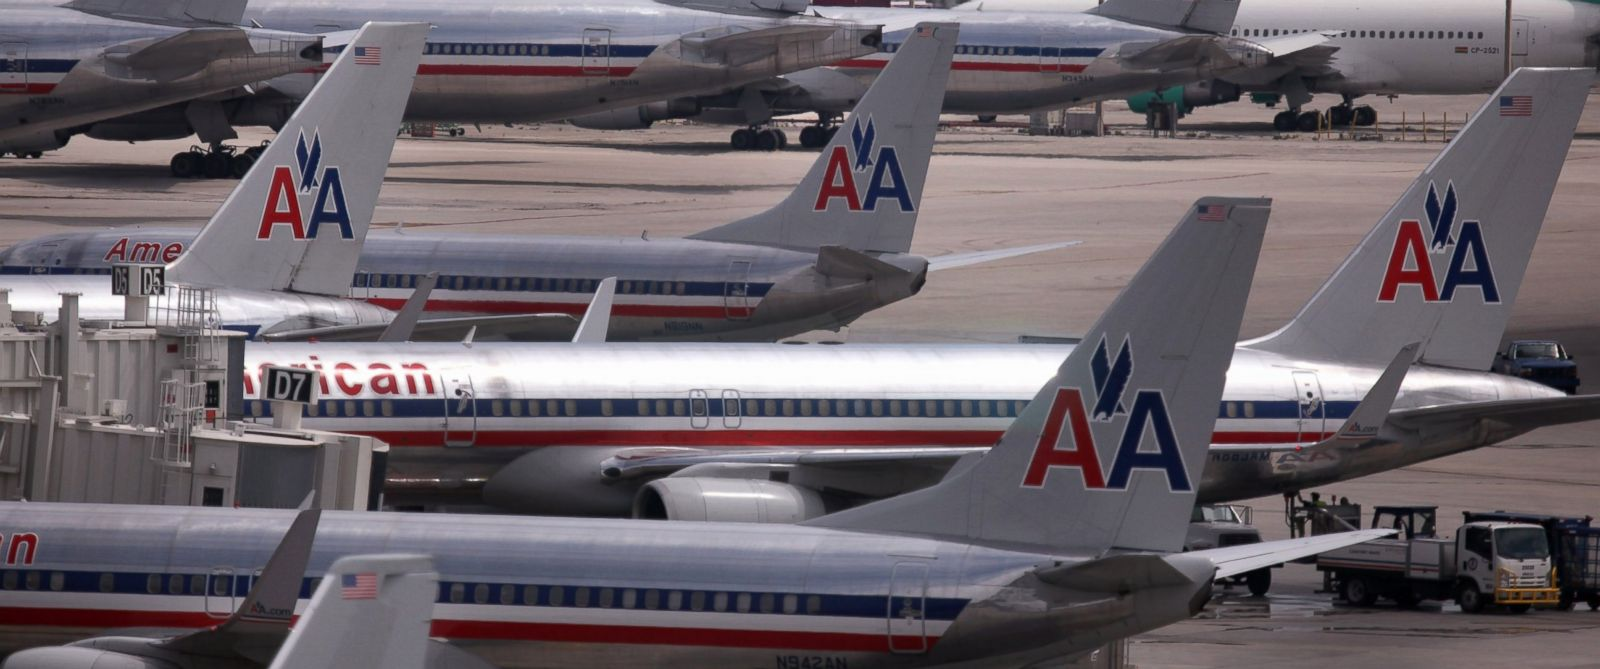 PHOTO: American Airlines flight 280 was diverted to Narita International Airport in Tokyo from Seoul, South Korea, after encountering turbulence.